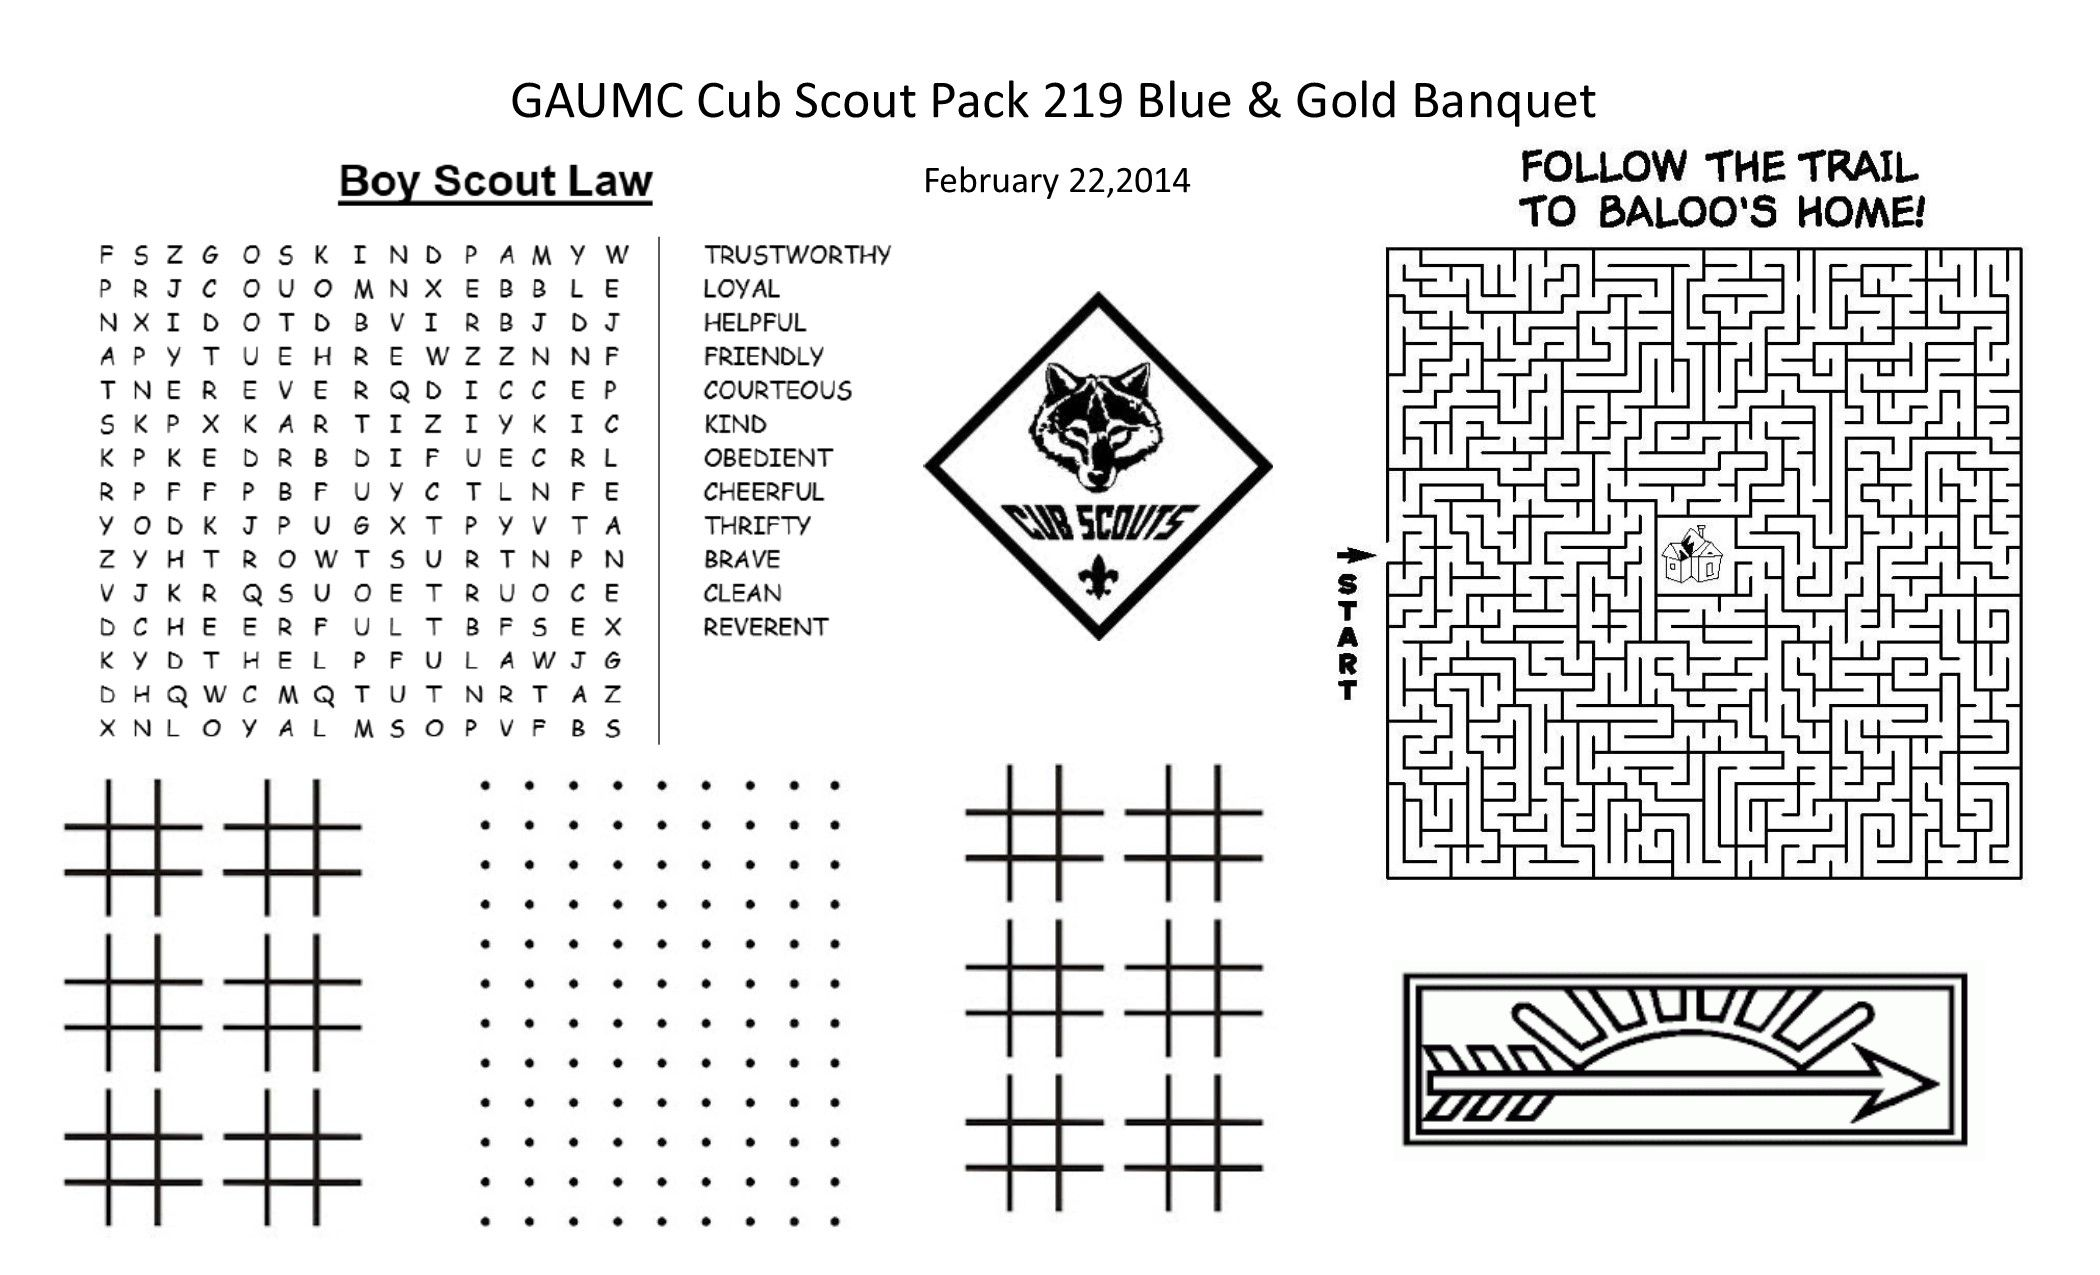 Pin On Cubscout